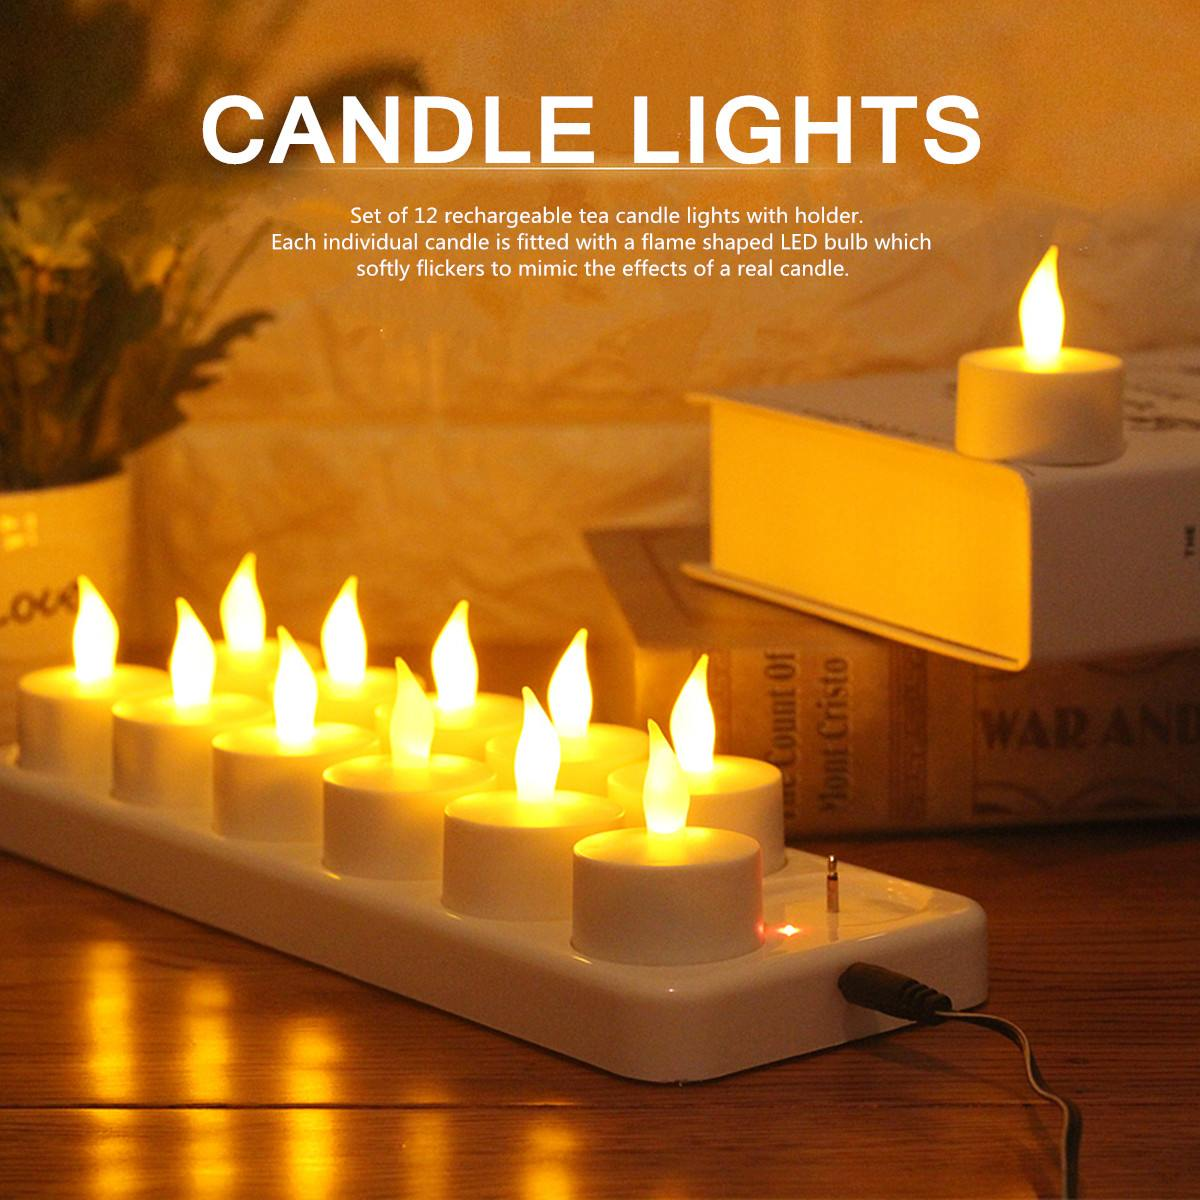 Flickering LED Tea Lights Candles 12 Rechargeable With Holder For Dinner Wedding Flame Shaped LED Bulb for Weddings Partys